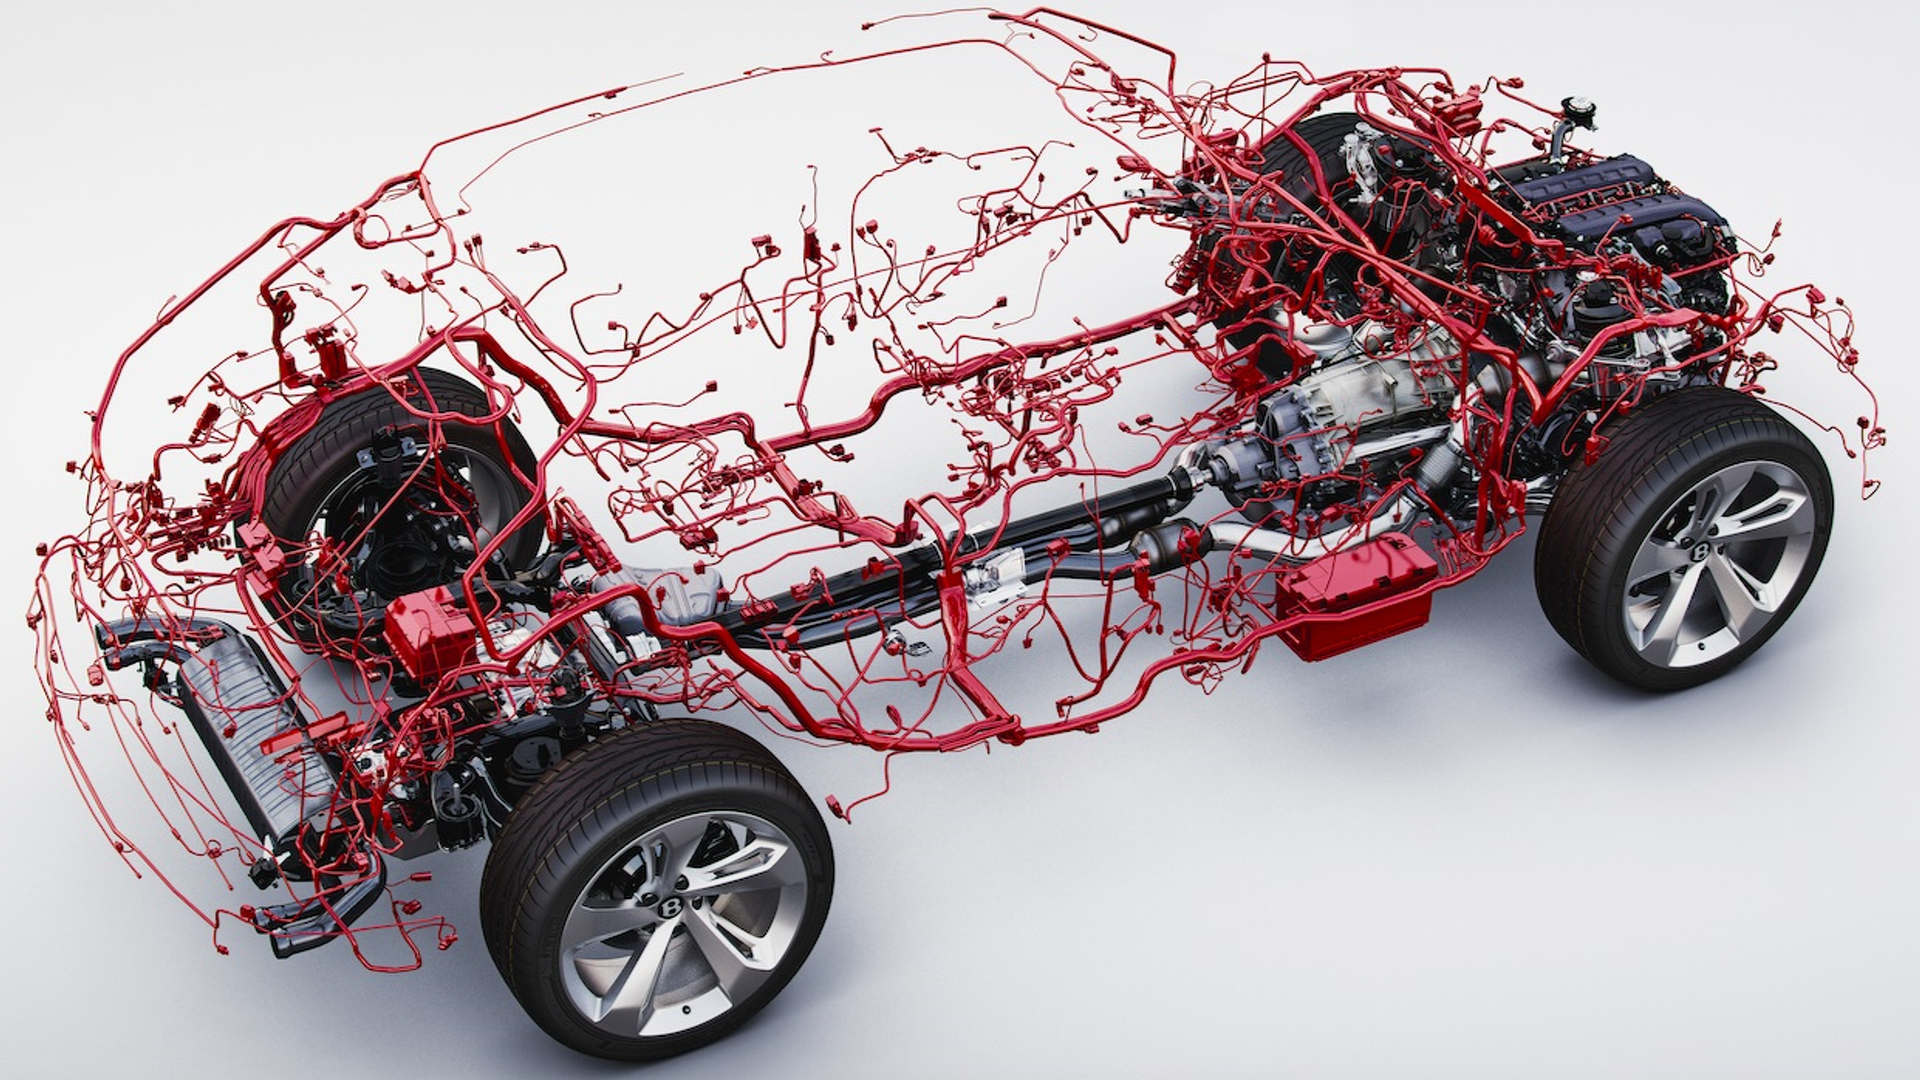 bentley bentayga wiring harness is weirdly beautiful crutchfield wiring harness vehicle specific wiring harnesses #4